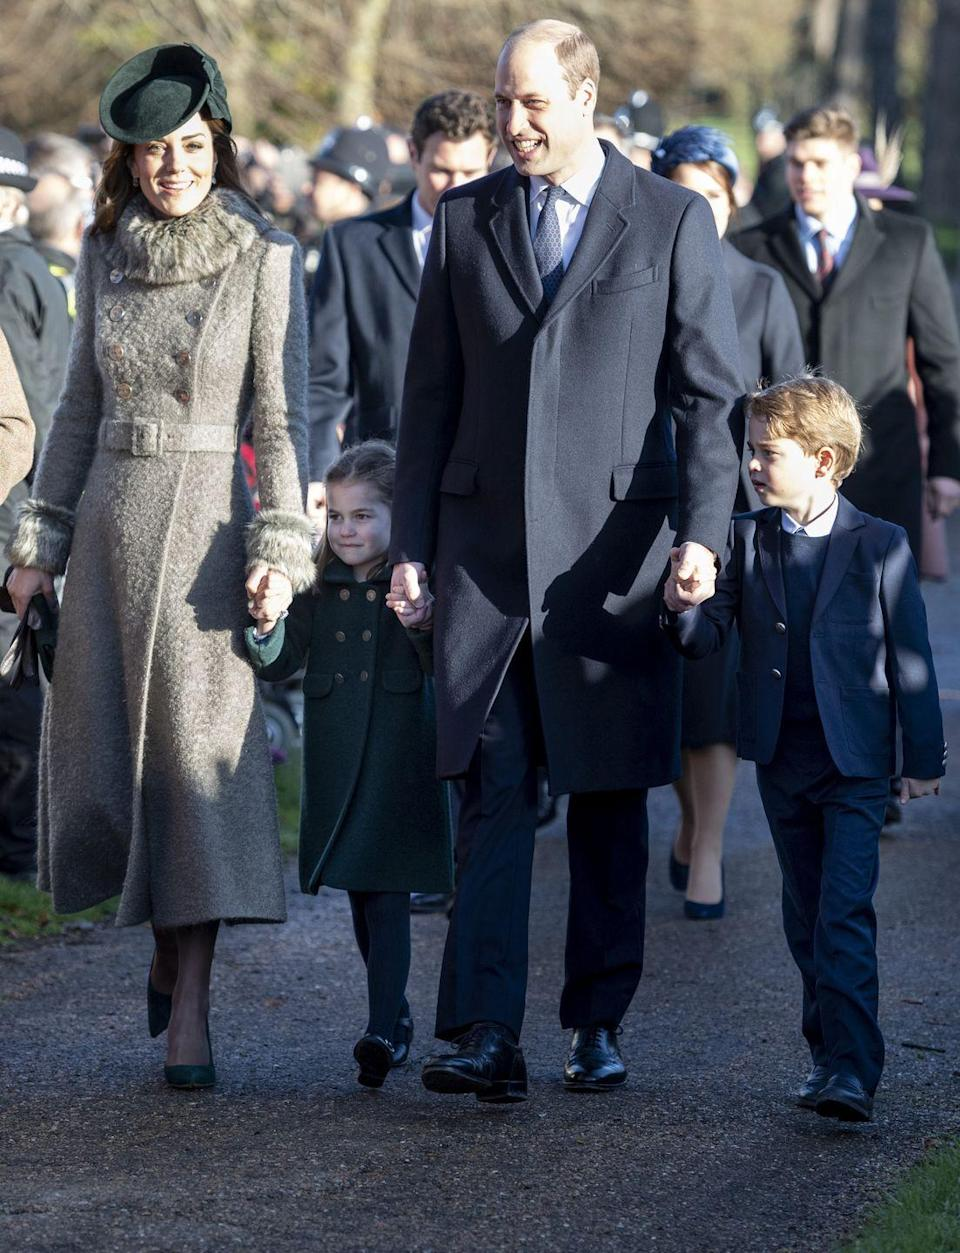 """<p>Even though royal children are in the public eye since the day they are born, they don't join the rest of the family for the Christmas church service <a href=""""https://www.goodhousekeeping.com/life/entertainment/g29844387/royal-family-first-christmas-photos/?slide=11"""" rel=""""nofollow noopener"""" target=""""_blank"""" data-ylk=""""slk:until they're a few years older"""" class=""""link rapid-noclick-resp"""">until they're a few years older</a>. Prince George and Princess Charlotte attended for the first time in 2019. </p>"""